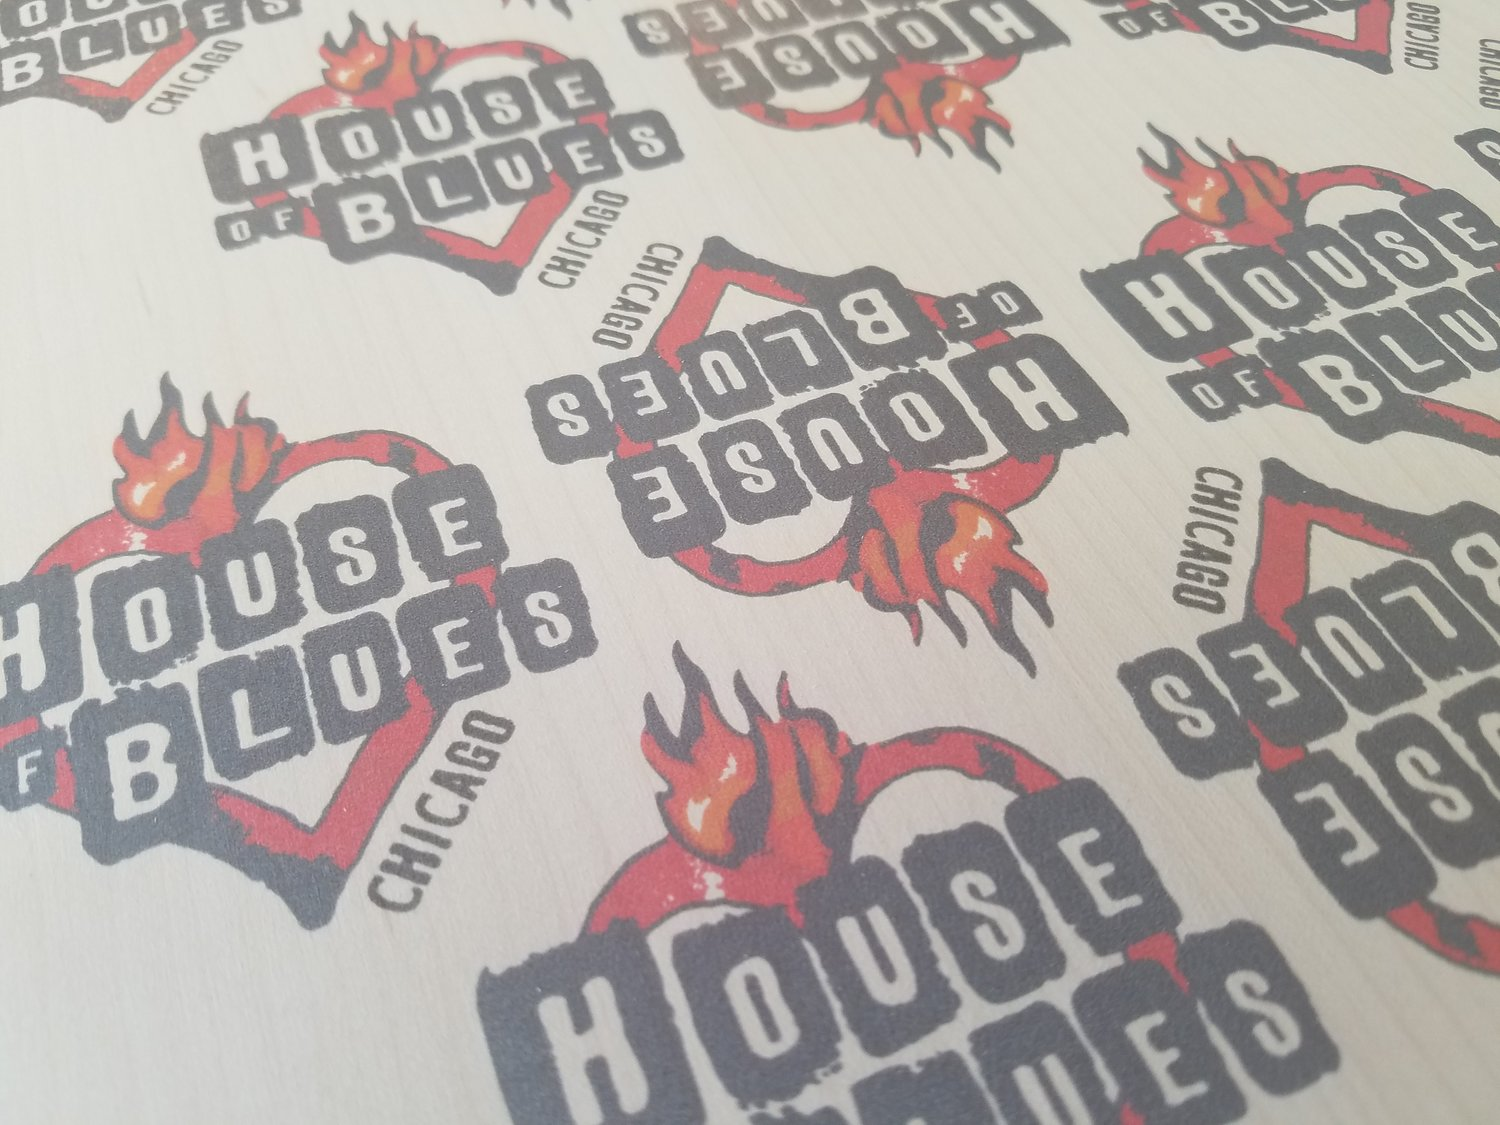 House of blues custom wood stickers available in their gear shops nationwide made in